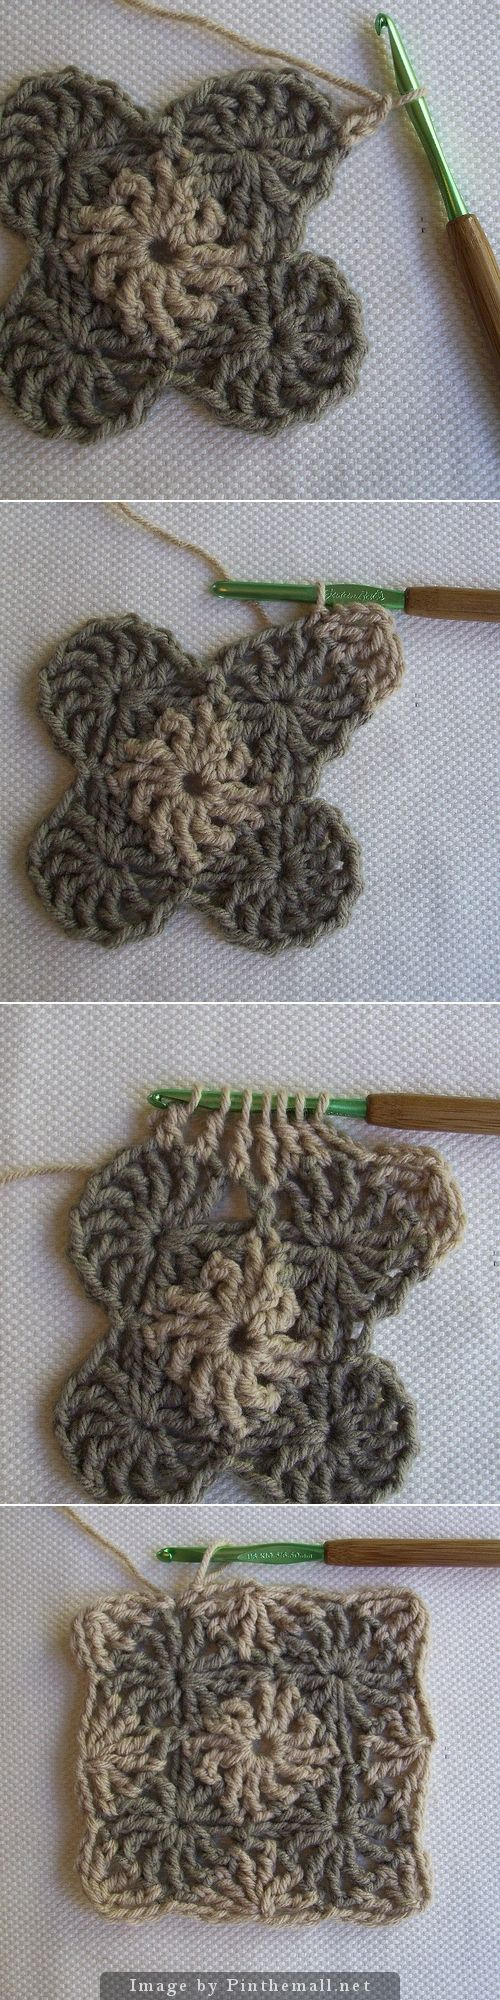 crochet - cool wheels granny square from crochet dad ~☆~ Teresa Restegui http://www.pinterest.com/teretegui/   ~☆~